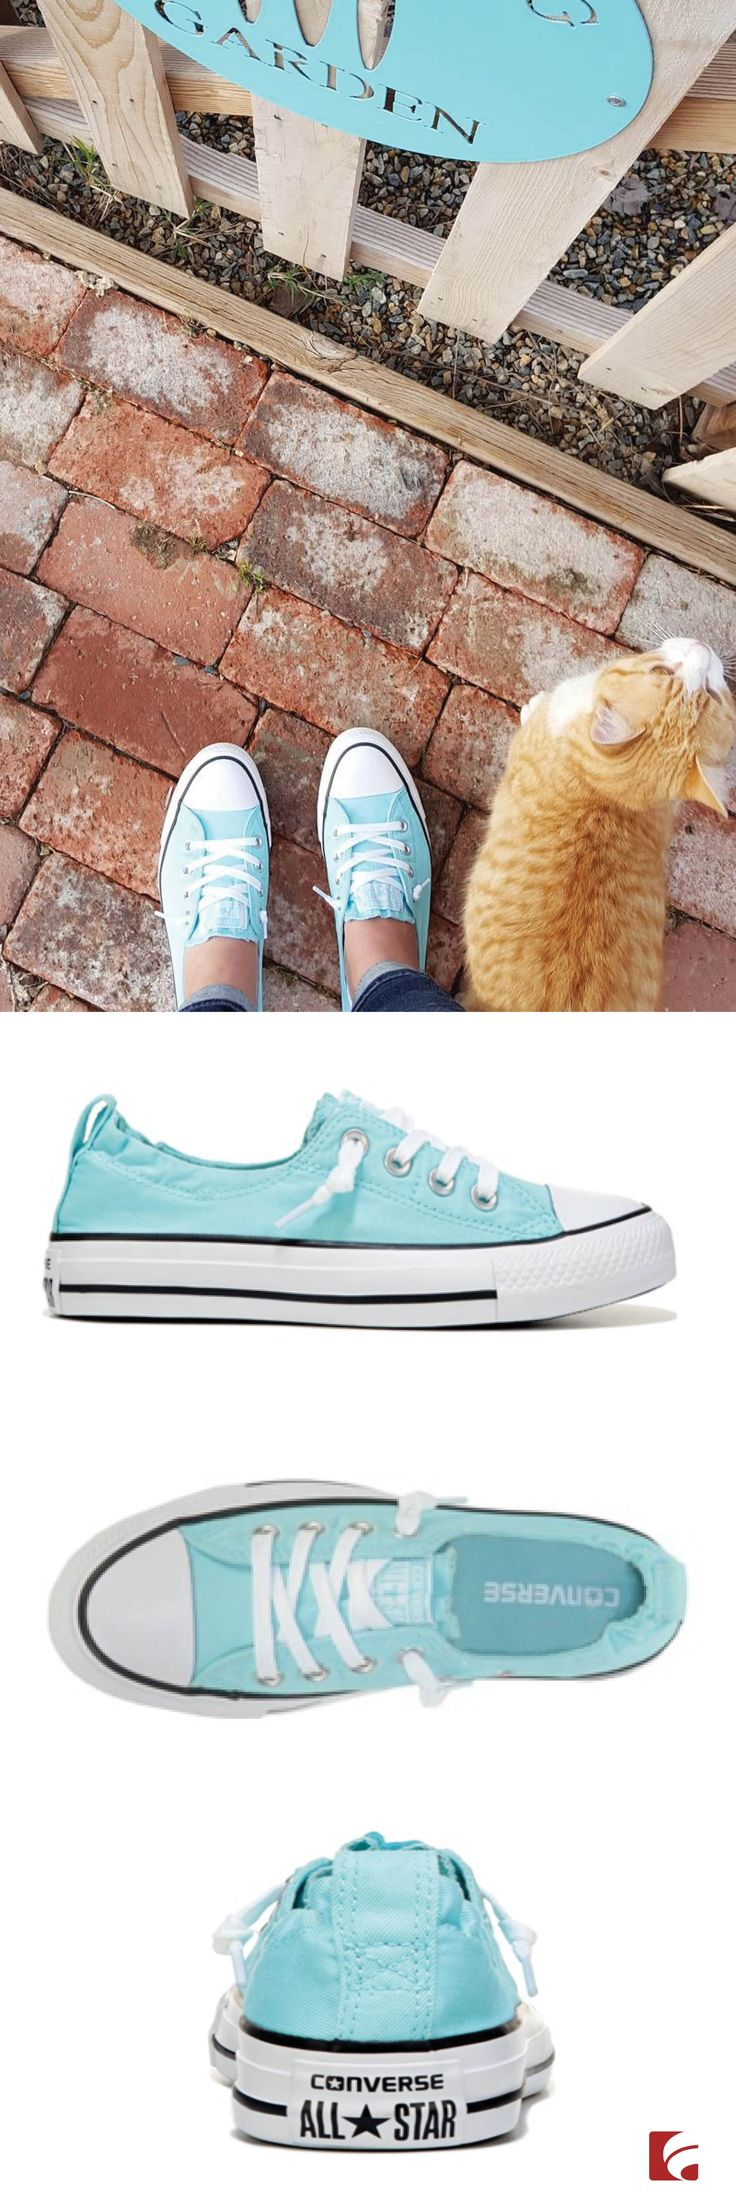 The cat's out of the bag - the Converse Chuck Taylor All Star Shoreline Slip-On Sneaker is the perfect shoe for spring and summer! This casual and cool style features a canvas upper in a slip-on style for effortless and comfortable wear. @vintagemetalco styled these sneaks perfectly with a pair of great jeans and her feline friend by her side!